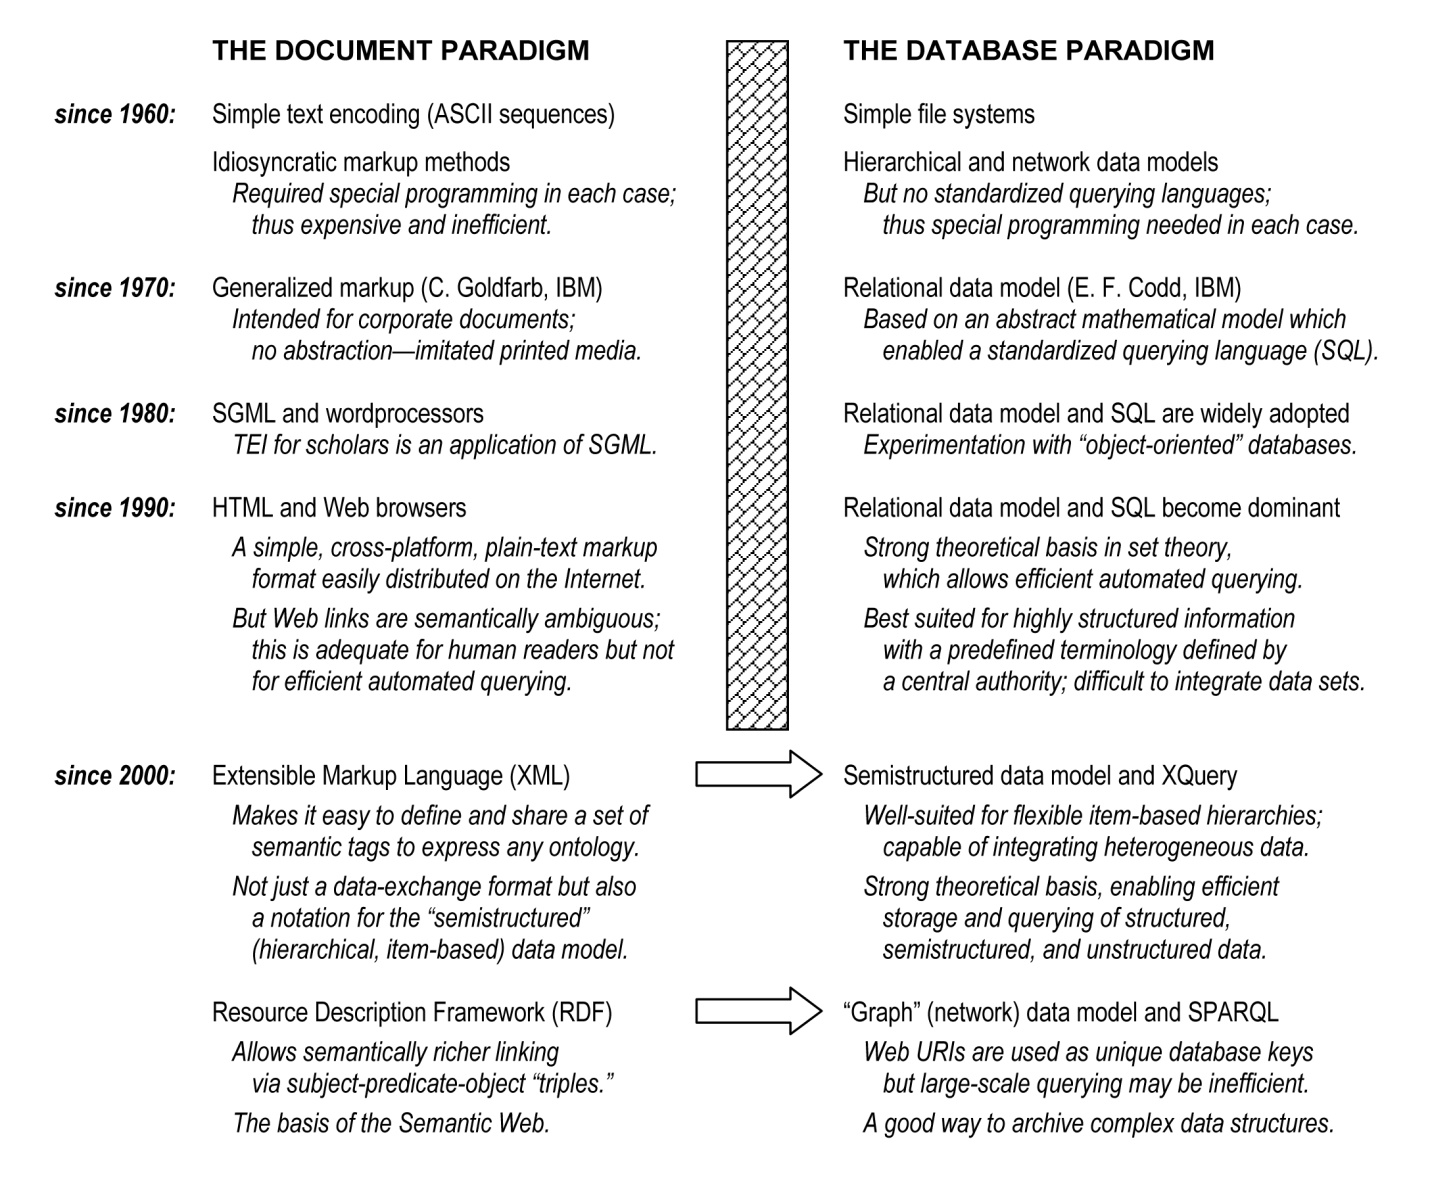 The history of the document paradigm versus the database paradigm